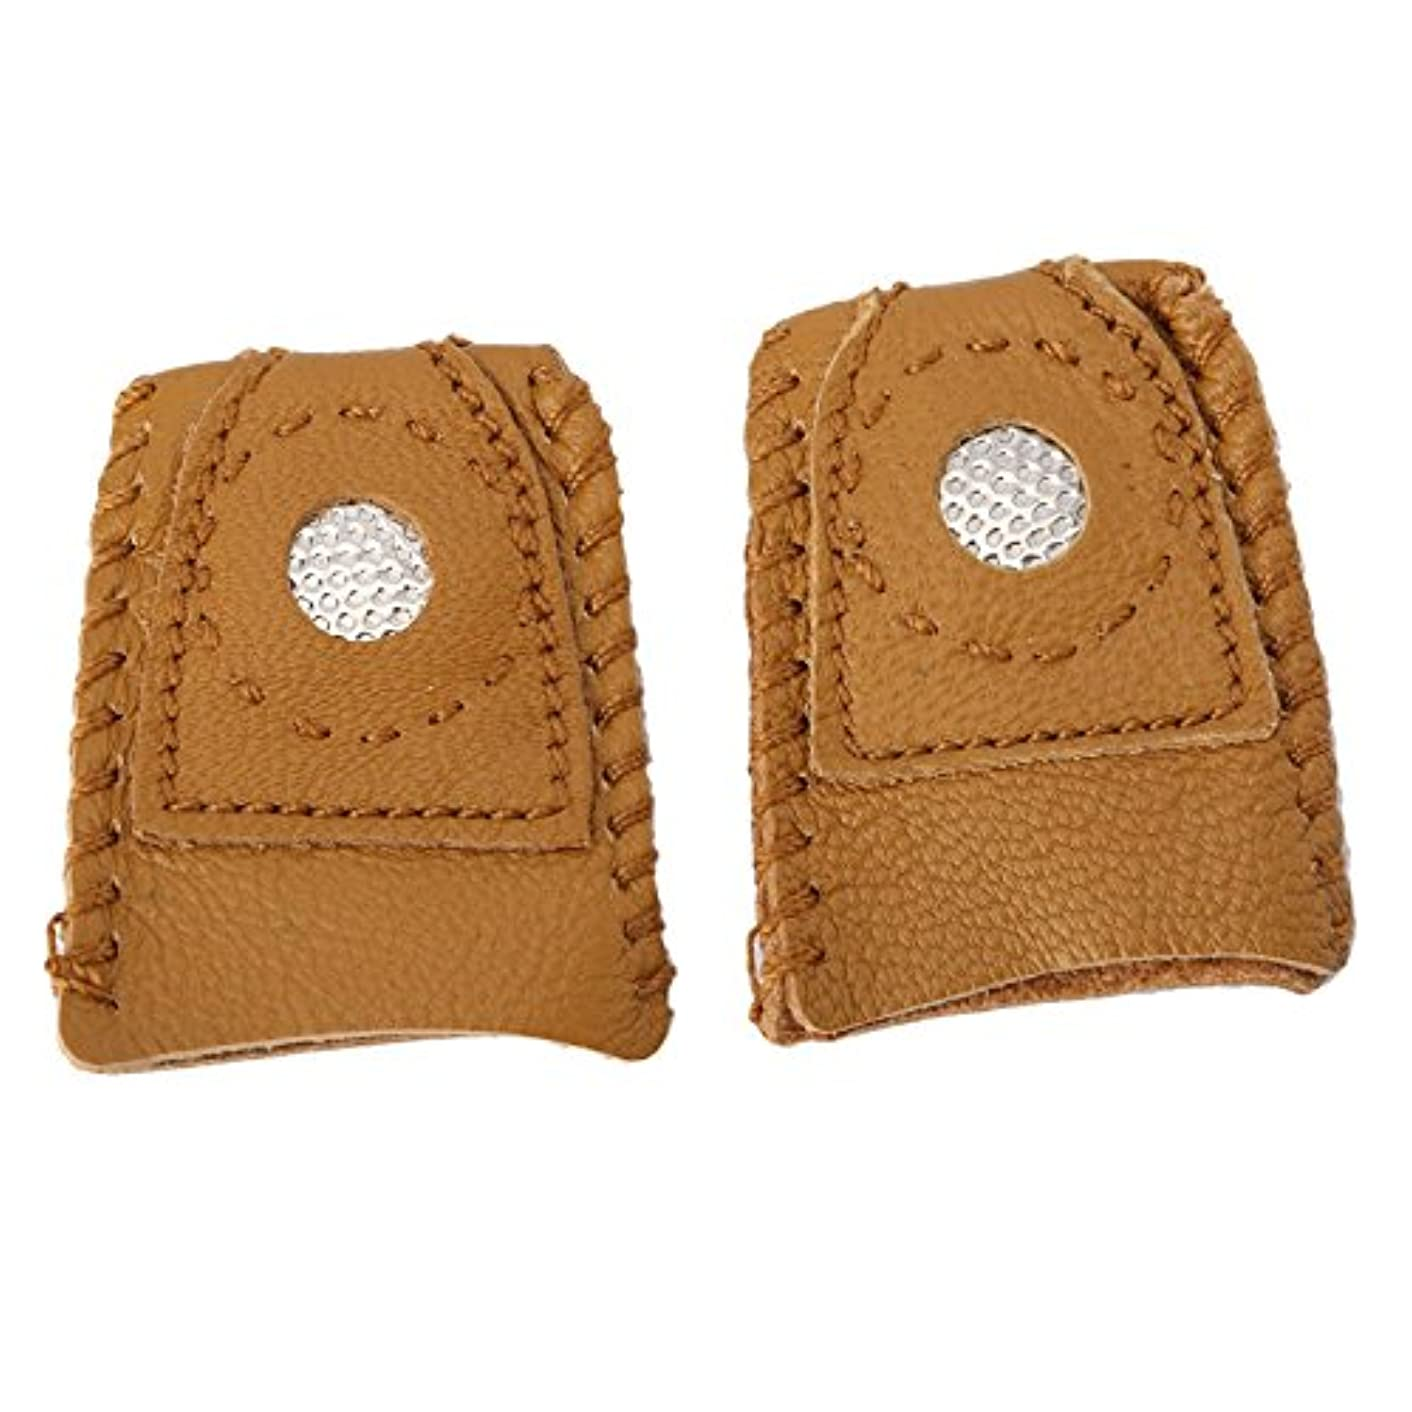 Mtsooning 2Pcs Small Leather Coin Thimble Finger-Fit Protector with Metal Tip Perfect for Sewer